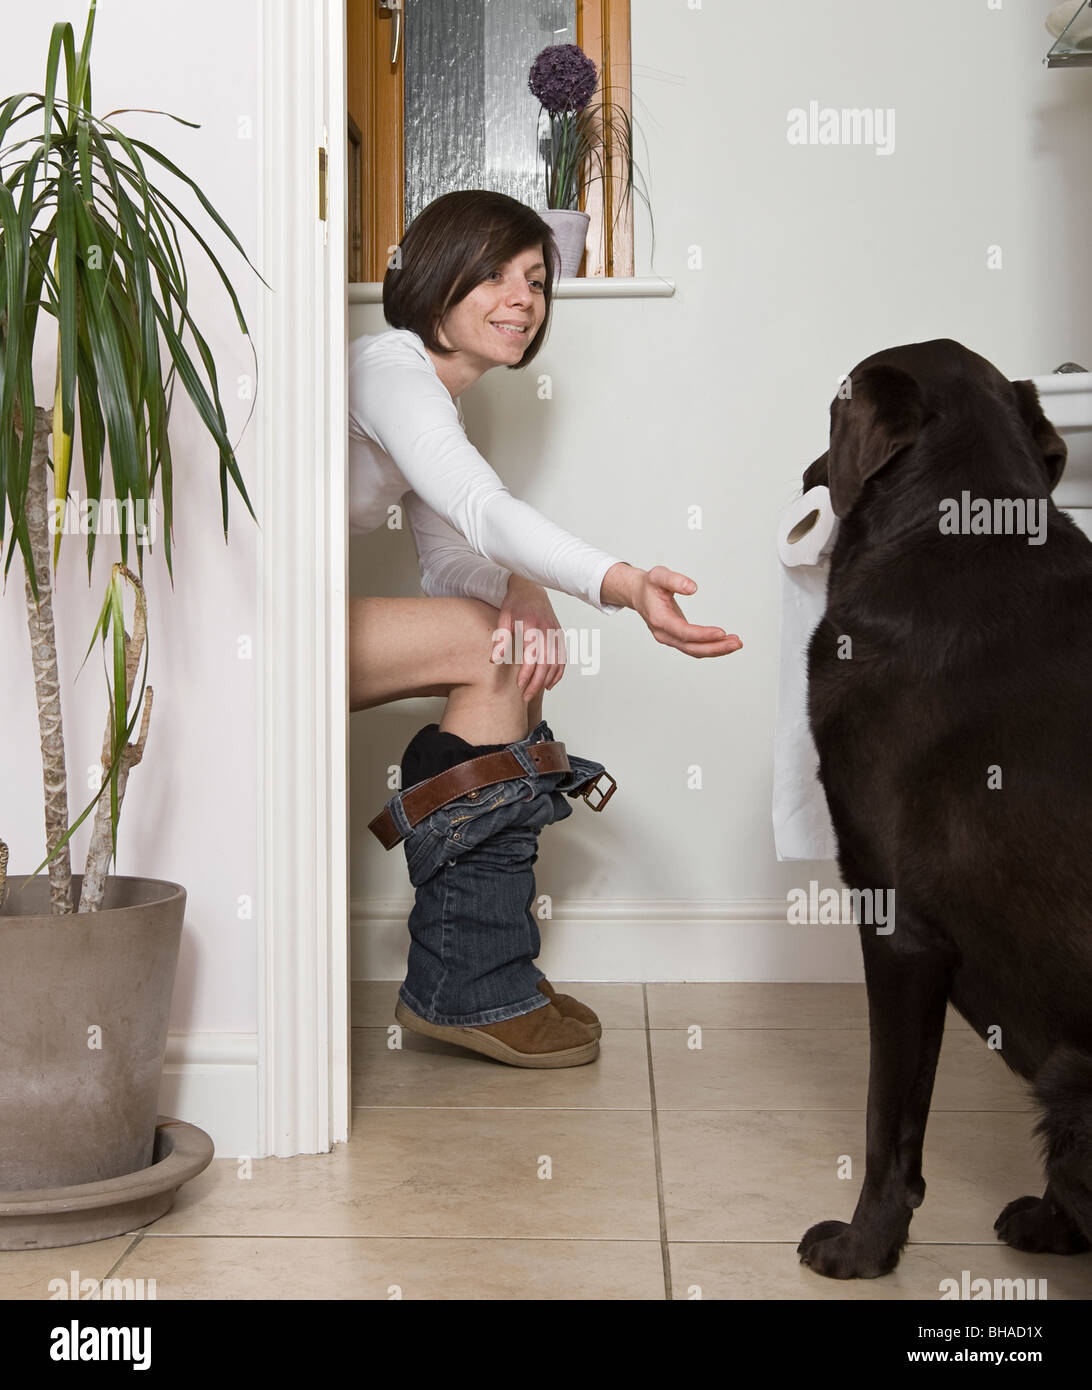 Shot Of A 30s Woman In The Bathroom And Dog Bringing The Toilet Roll Stock Photo Royalty Free